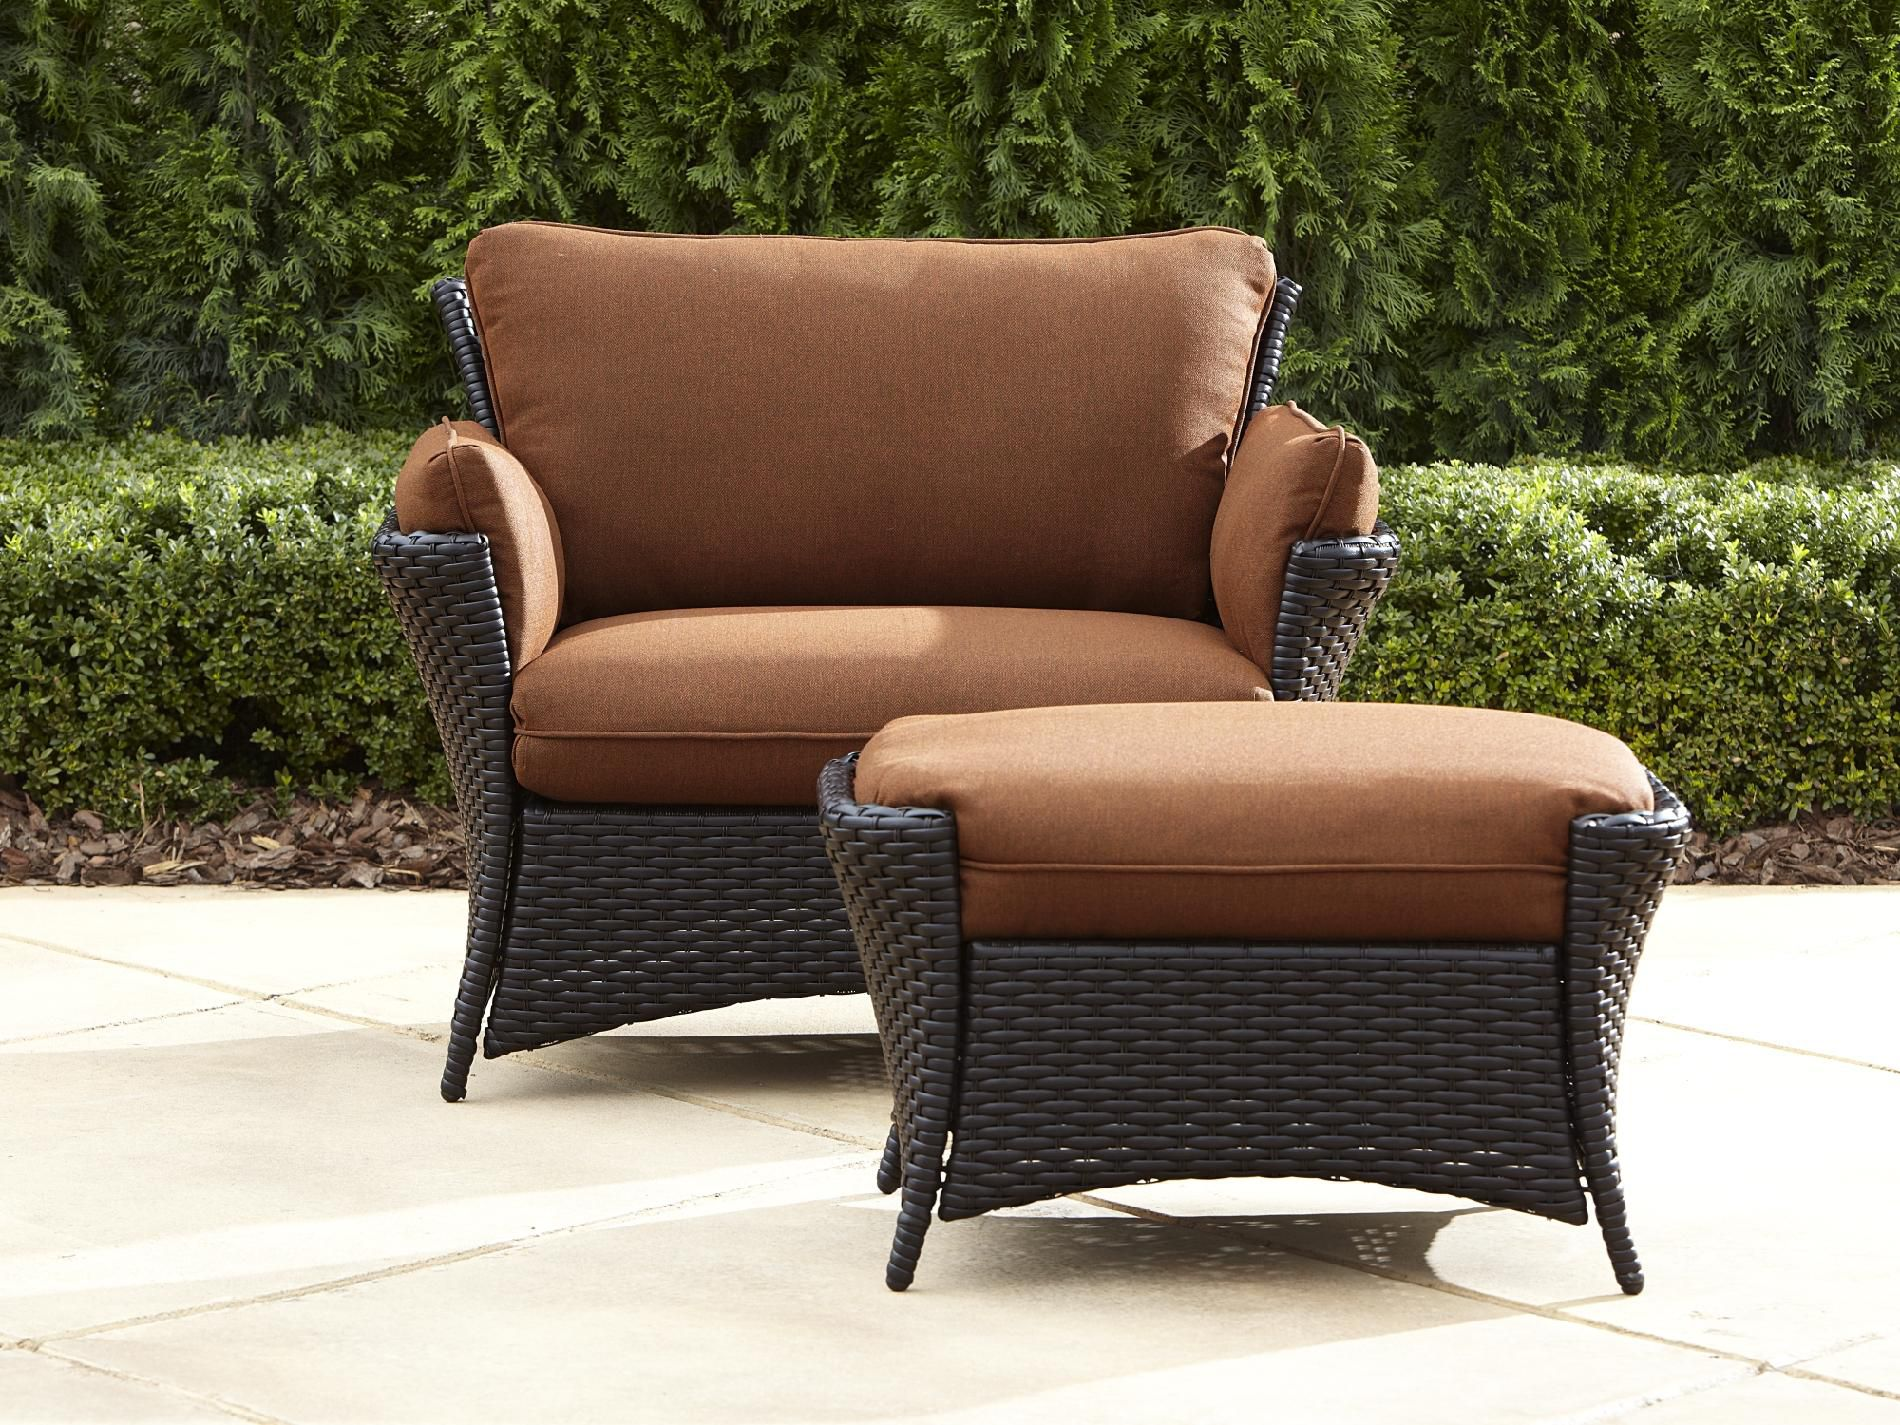 Patio Chairs With Ottoman La Z Boy Outdoor Everett Oversized Chair With Ottoman